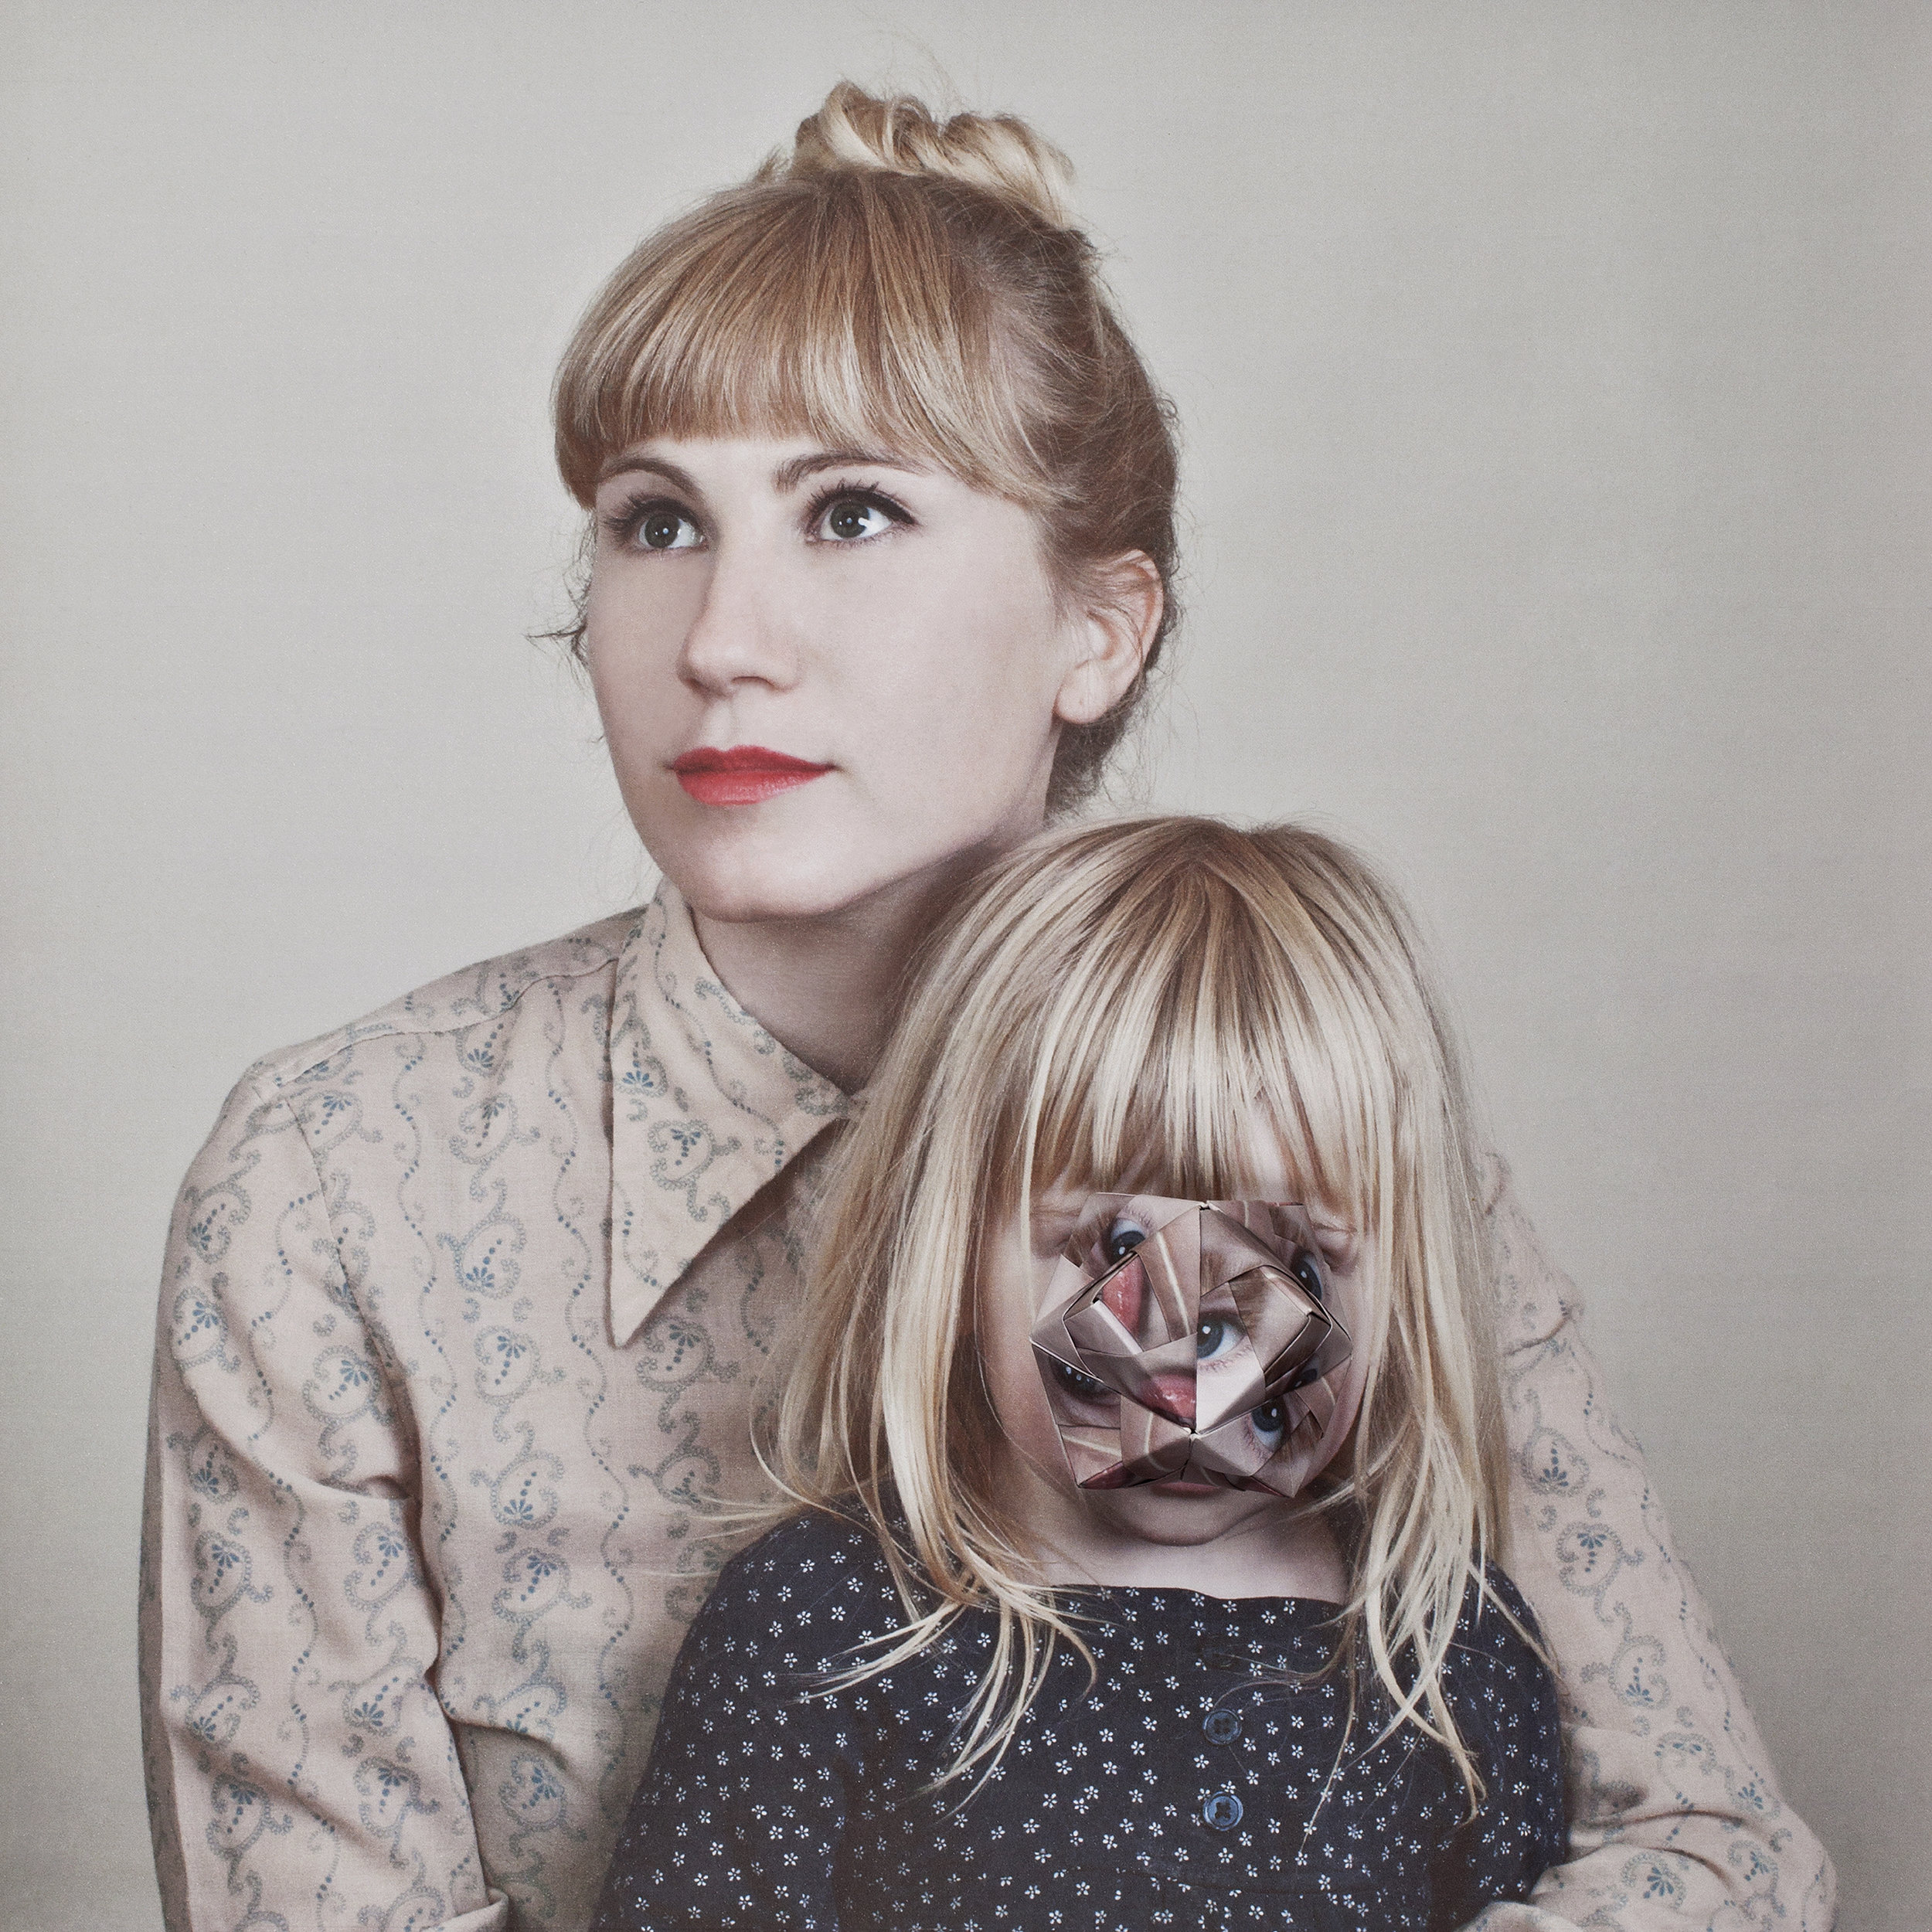 Alma Haser,  Patient No. 6 (Lily and Anastasia) , 2013  Digital pigment print, 60 x 60 cm (approx. 24 x 24 in), edition of 10   Inquire